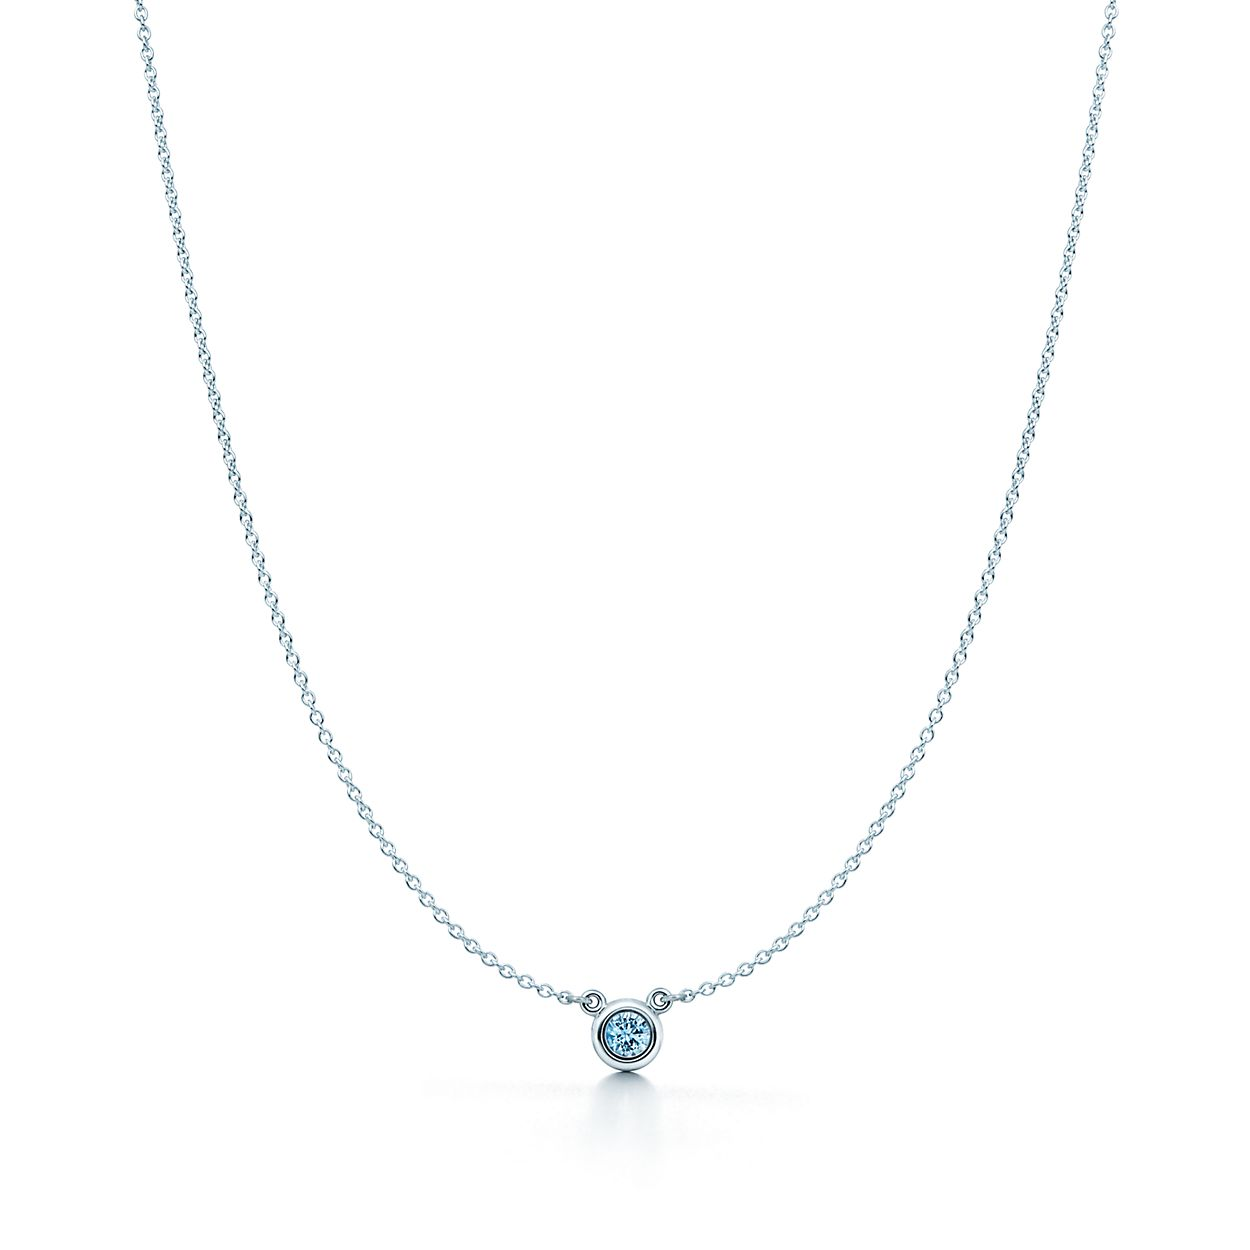 marine com buyewa main pdp ewa pendant necklace white gold rsp at blue aquamarine online john johnlewis aqua lewis